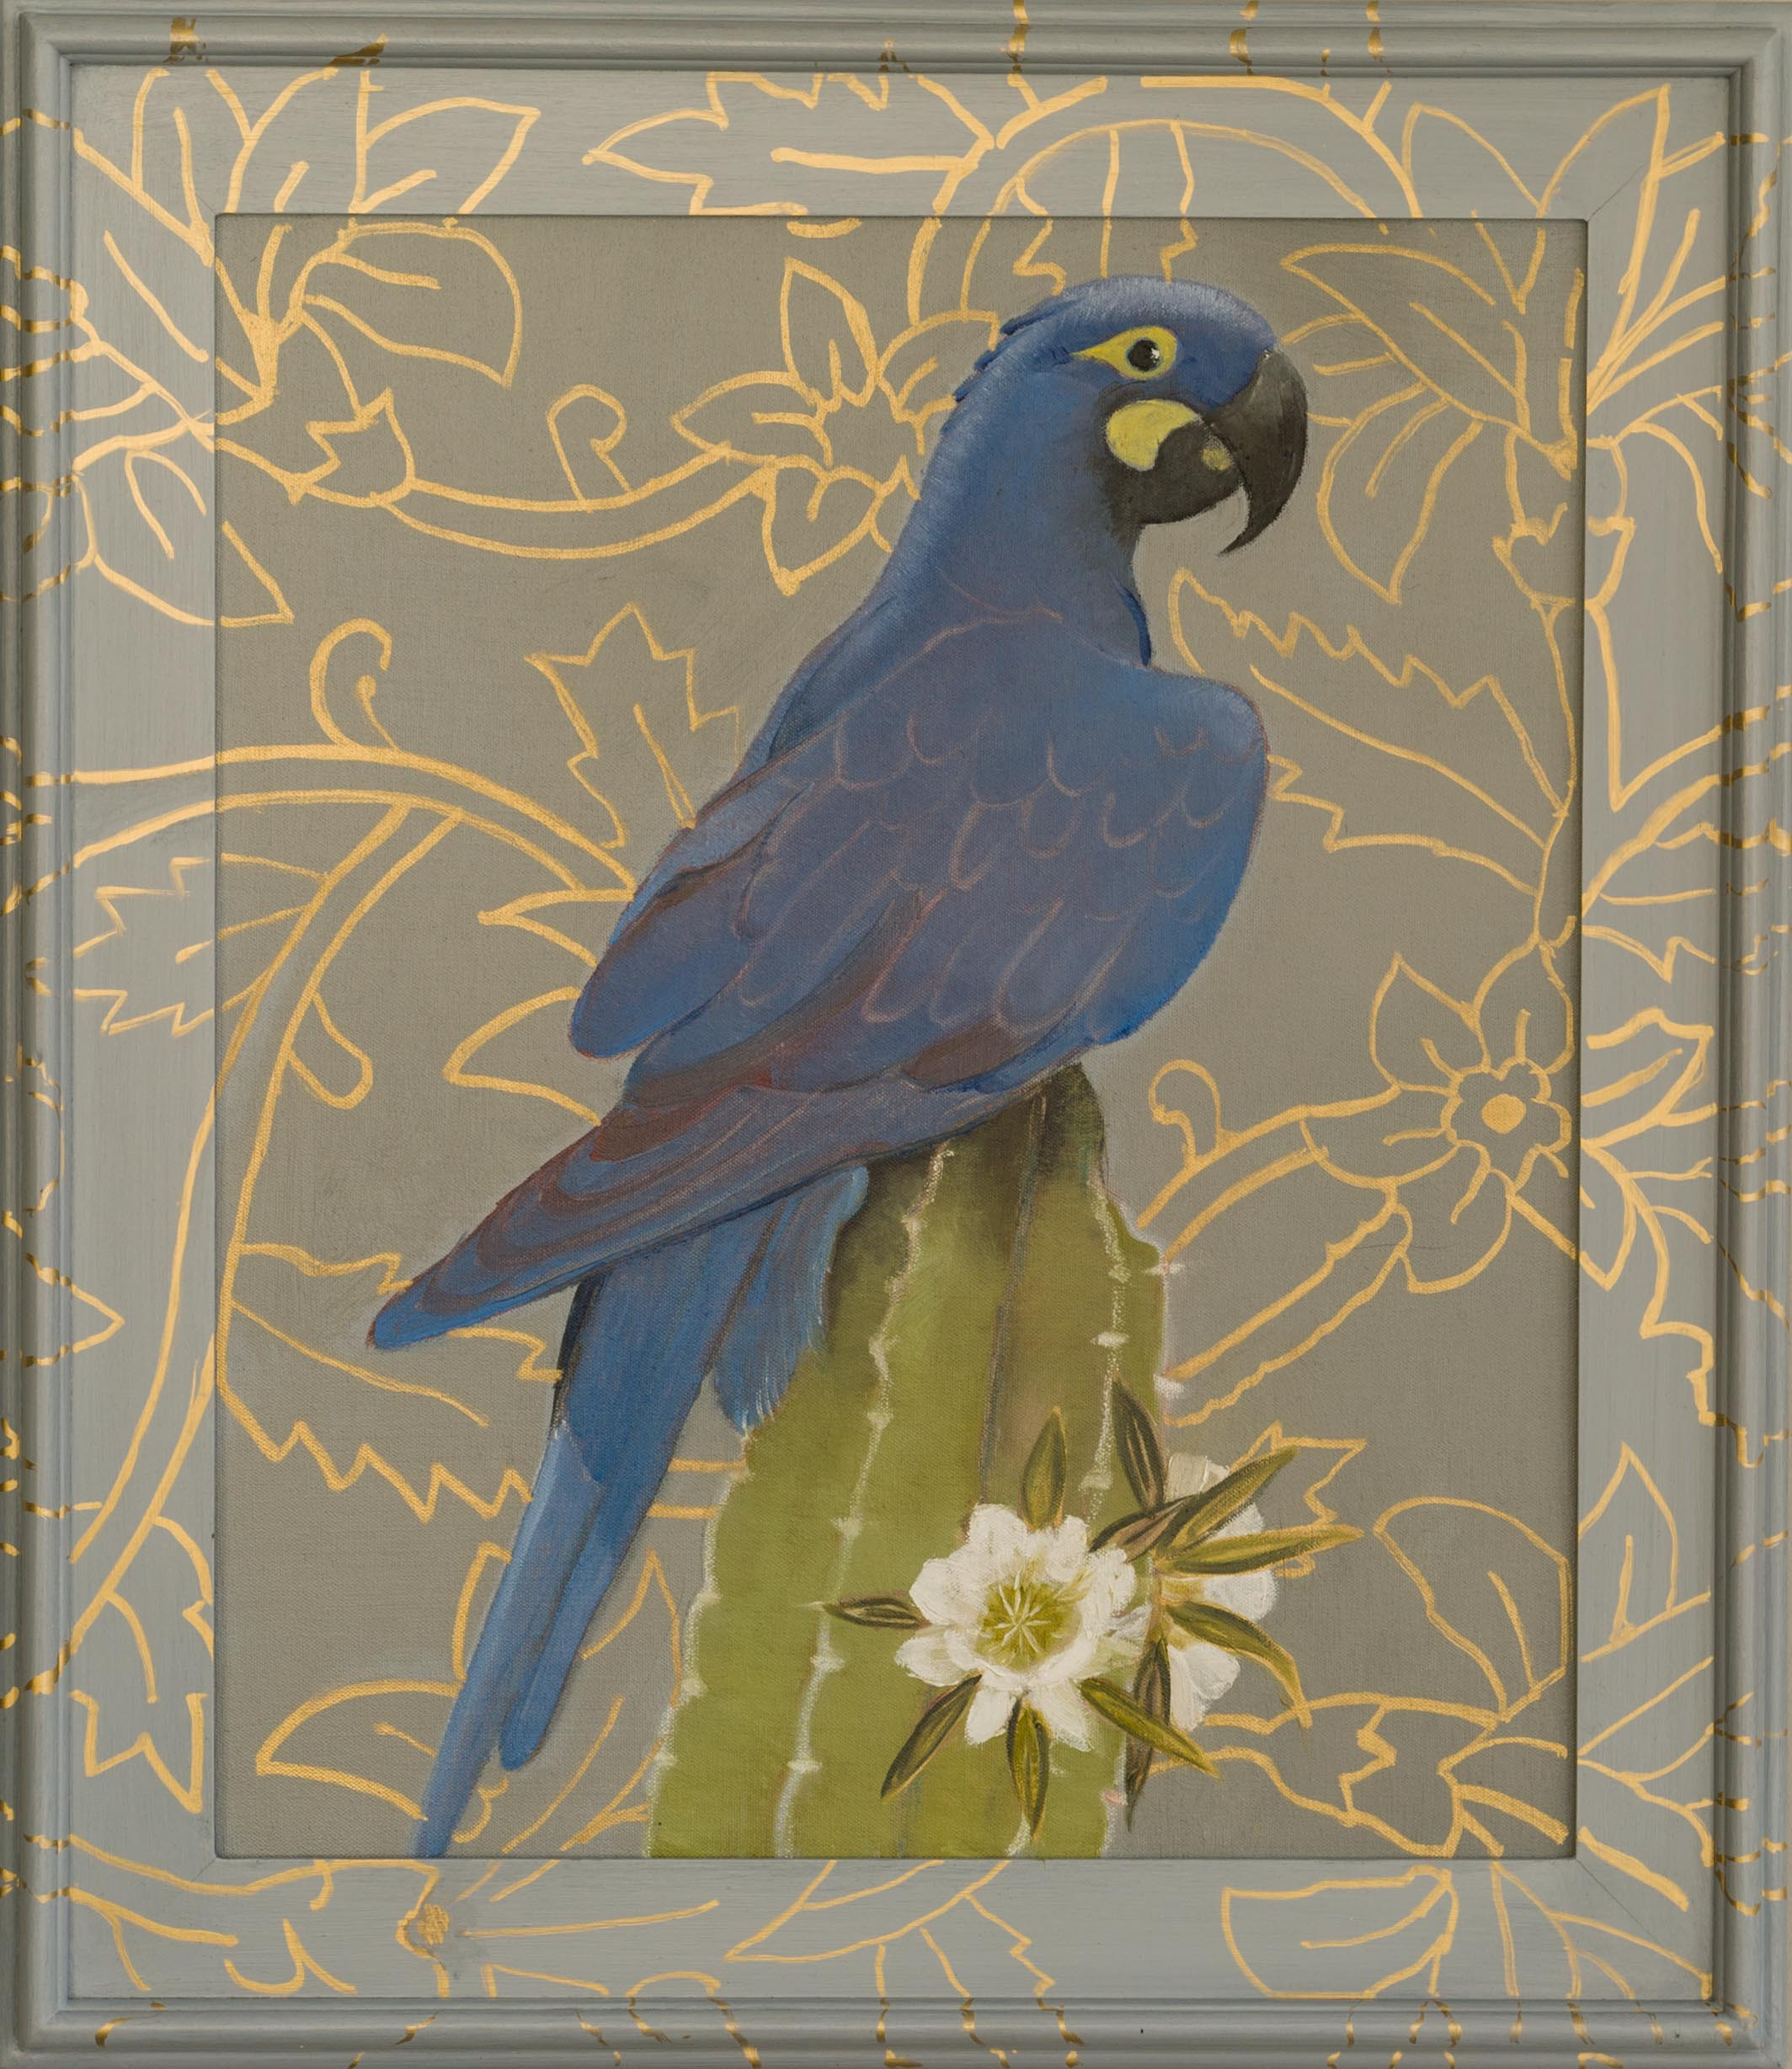 Hyacinth Parrot - 30x26 (framed) - Oil on canvas - 2015 web_